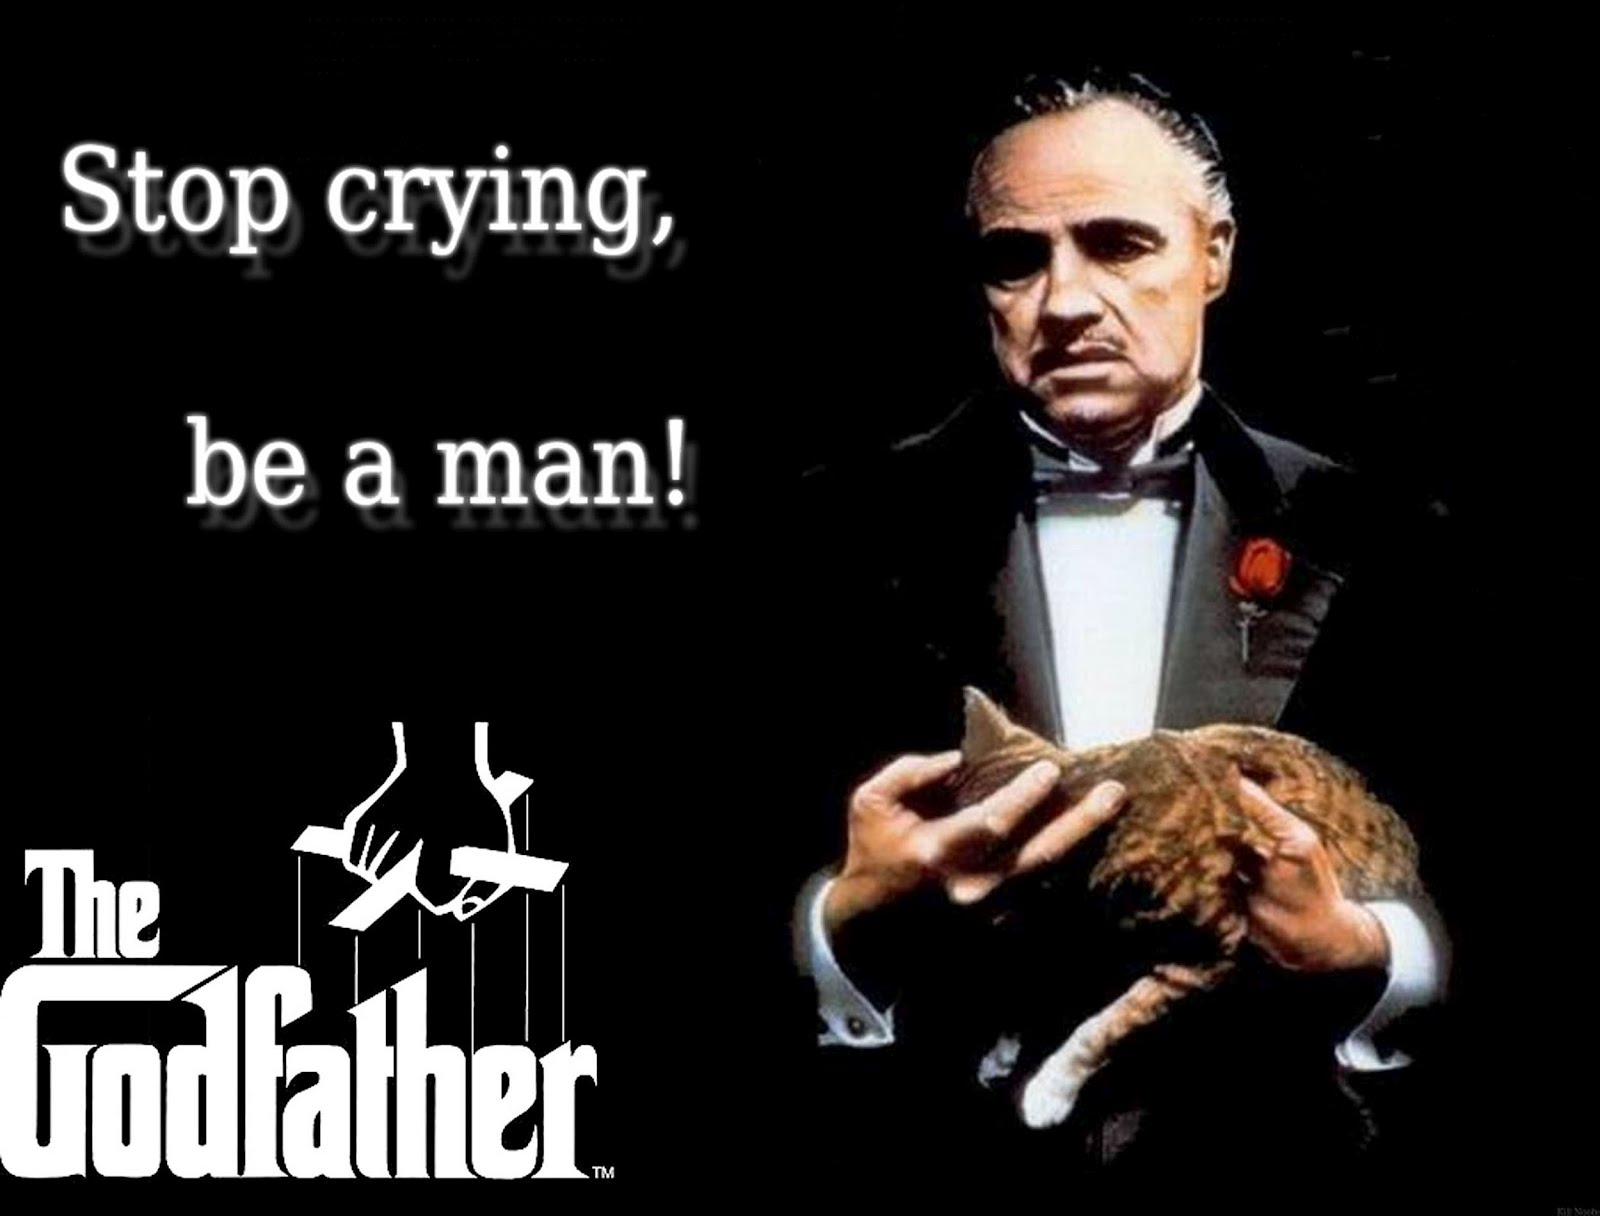 Memorable Quotes From The Godfather - Godfather Part 1 Poster - HD Wallpaper